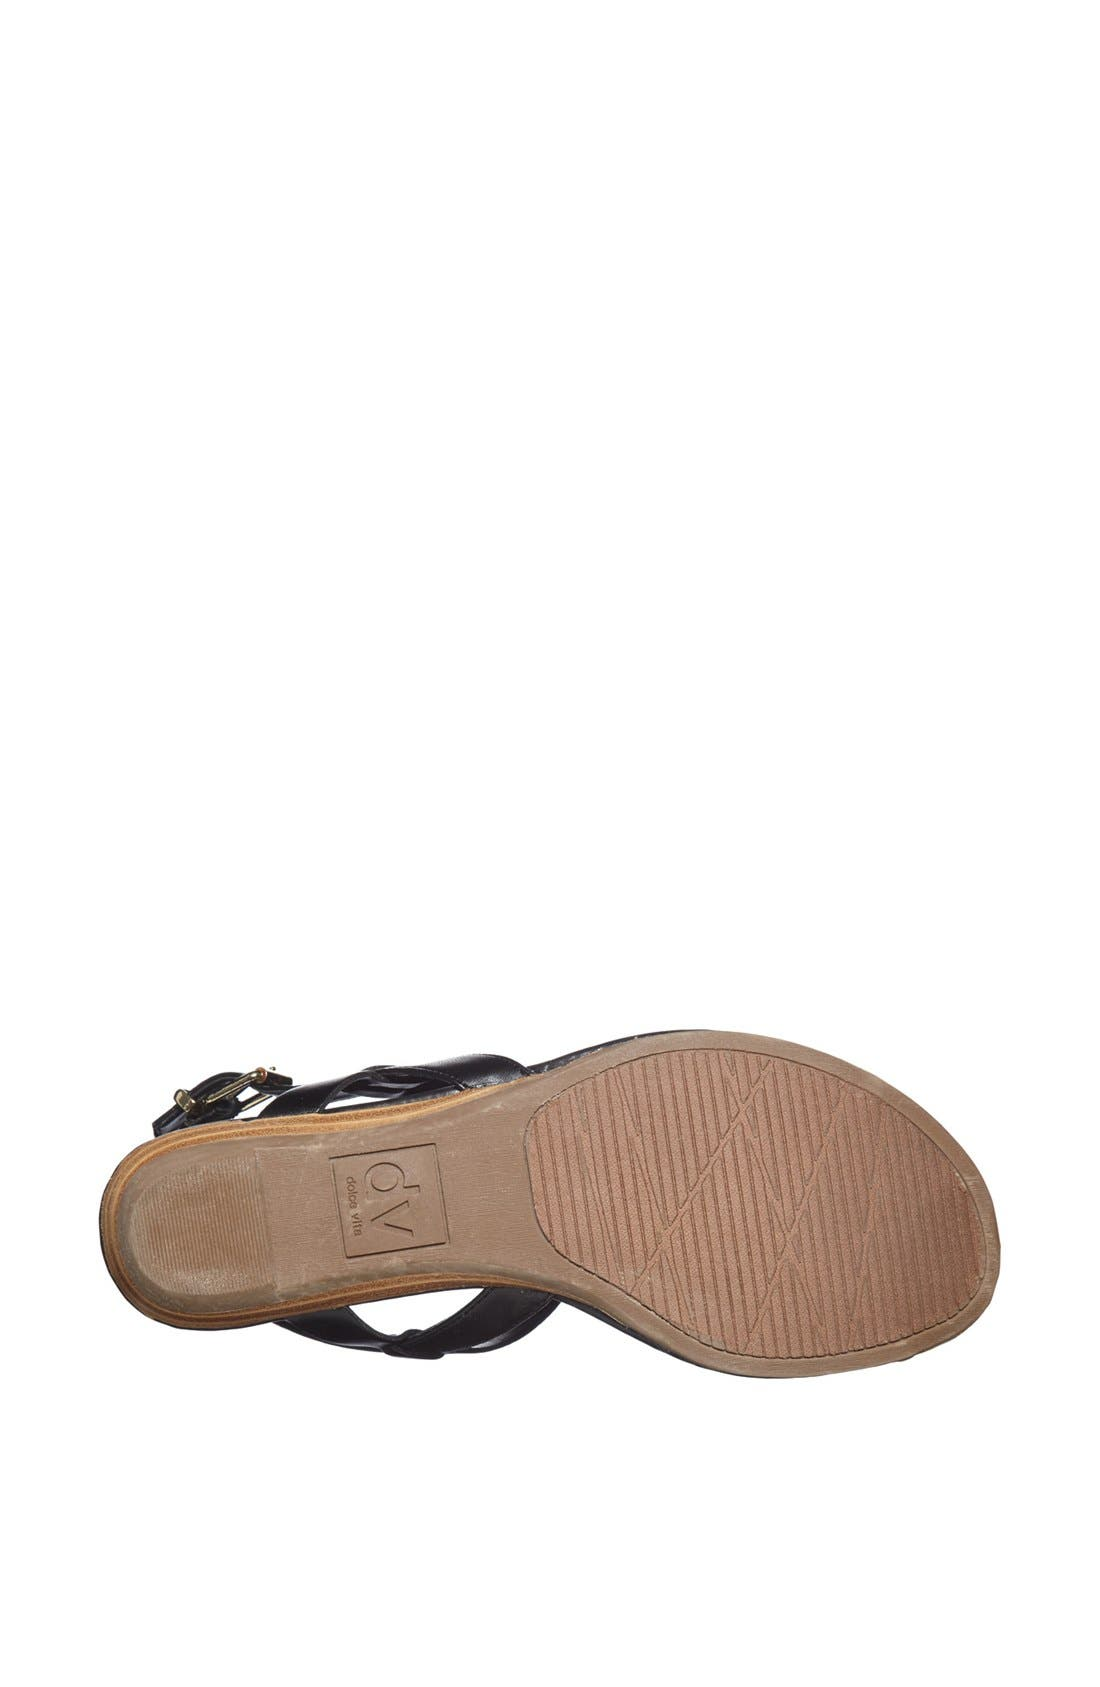 DV by Dolce Vita 'Abley' Thong Sandal,                             Alternate thumbnail 3, color,                             001